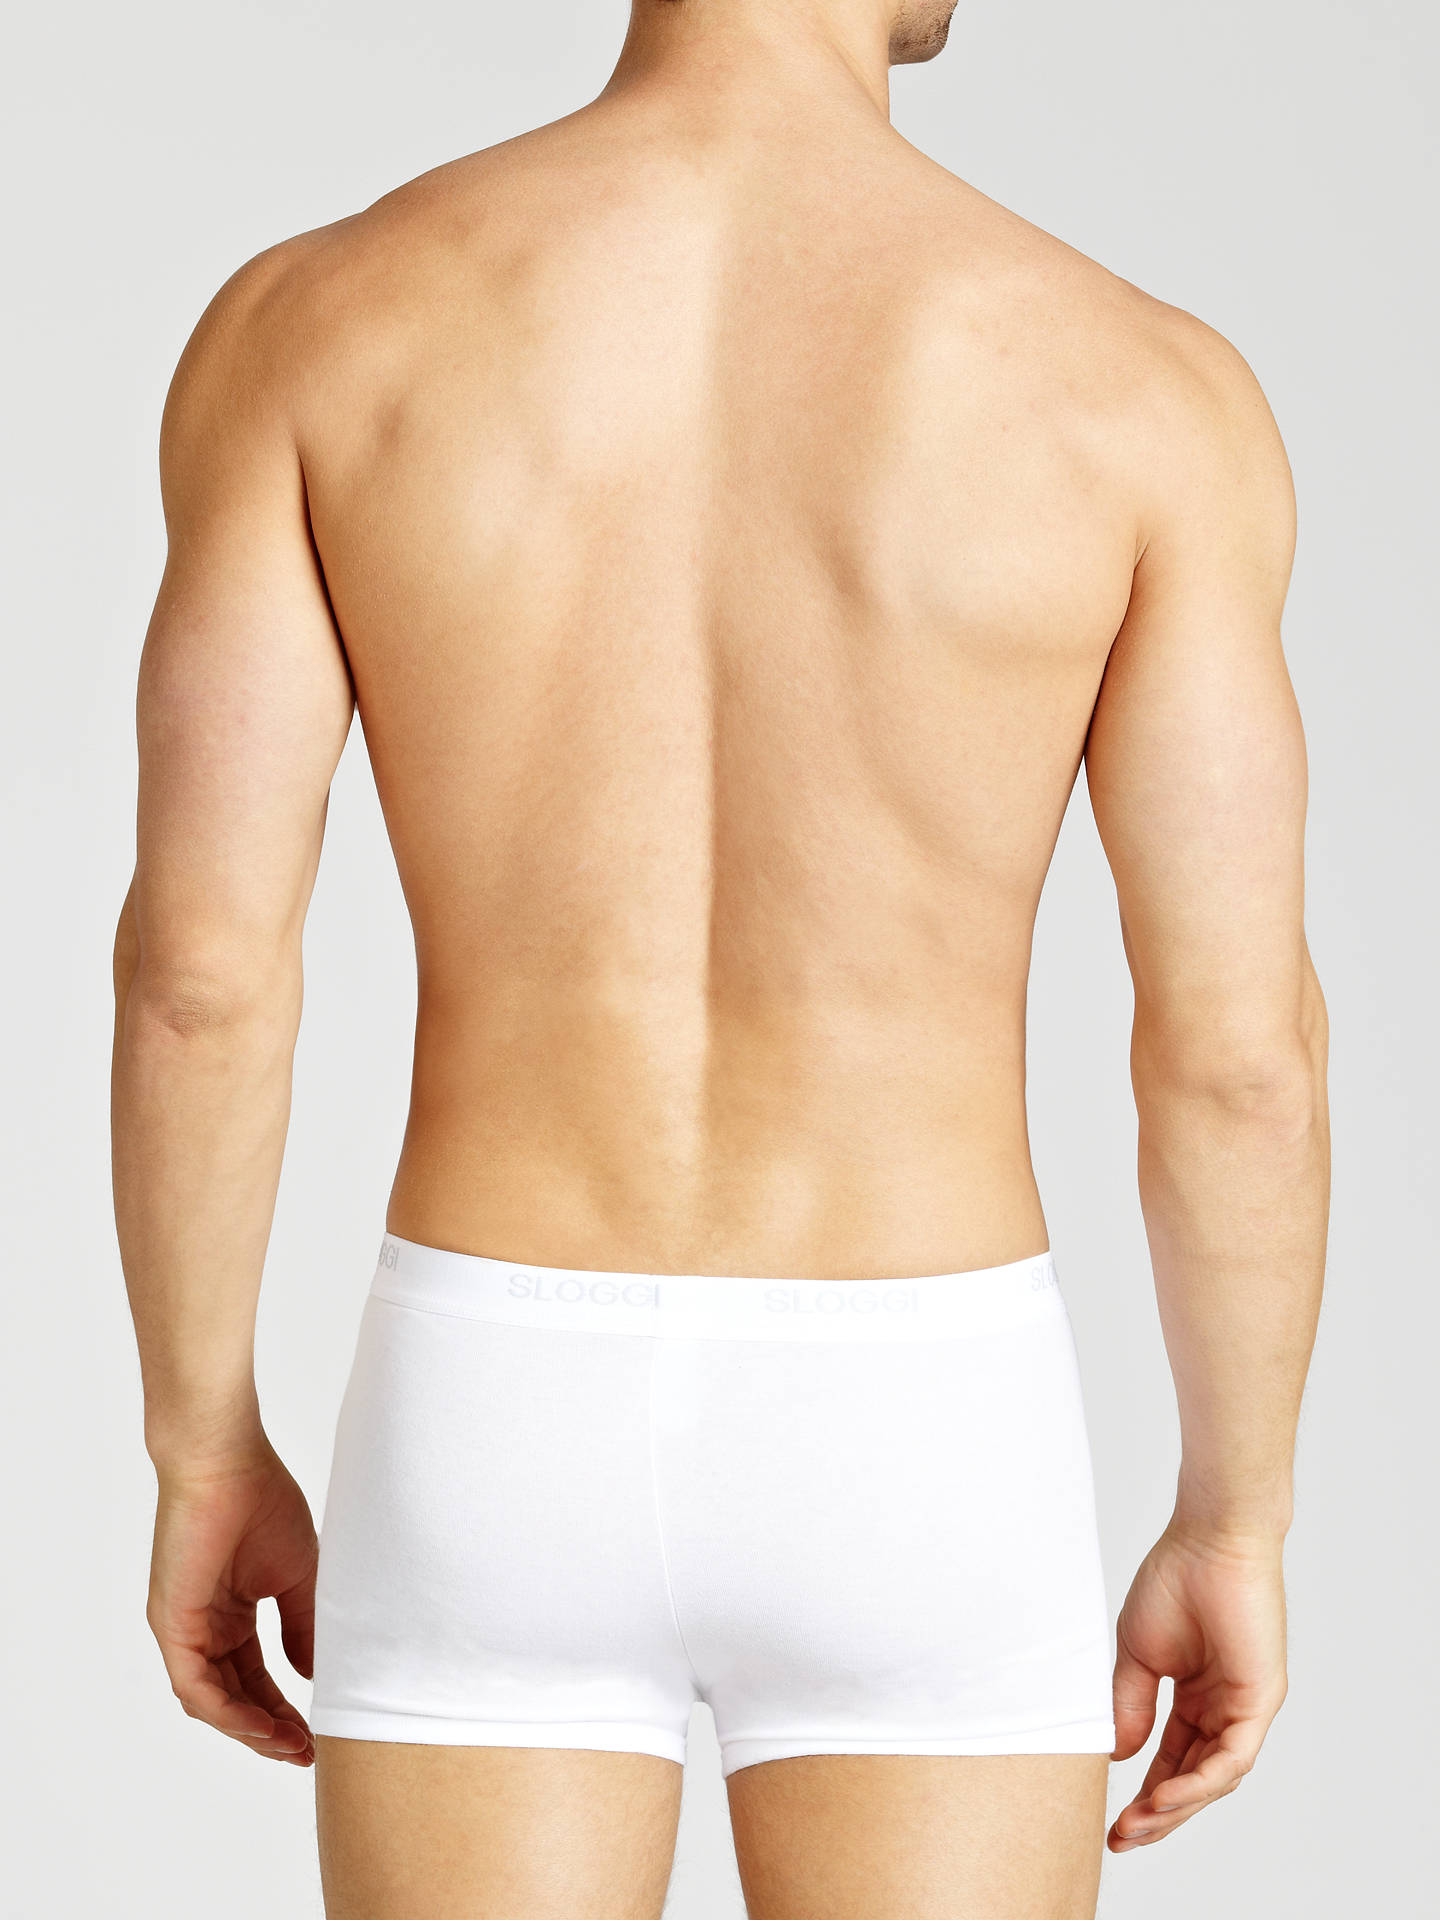 Buy Sloggi Basic Trunks, Pack of 2, White, S Online at johnlewis.com